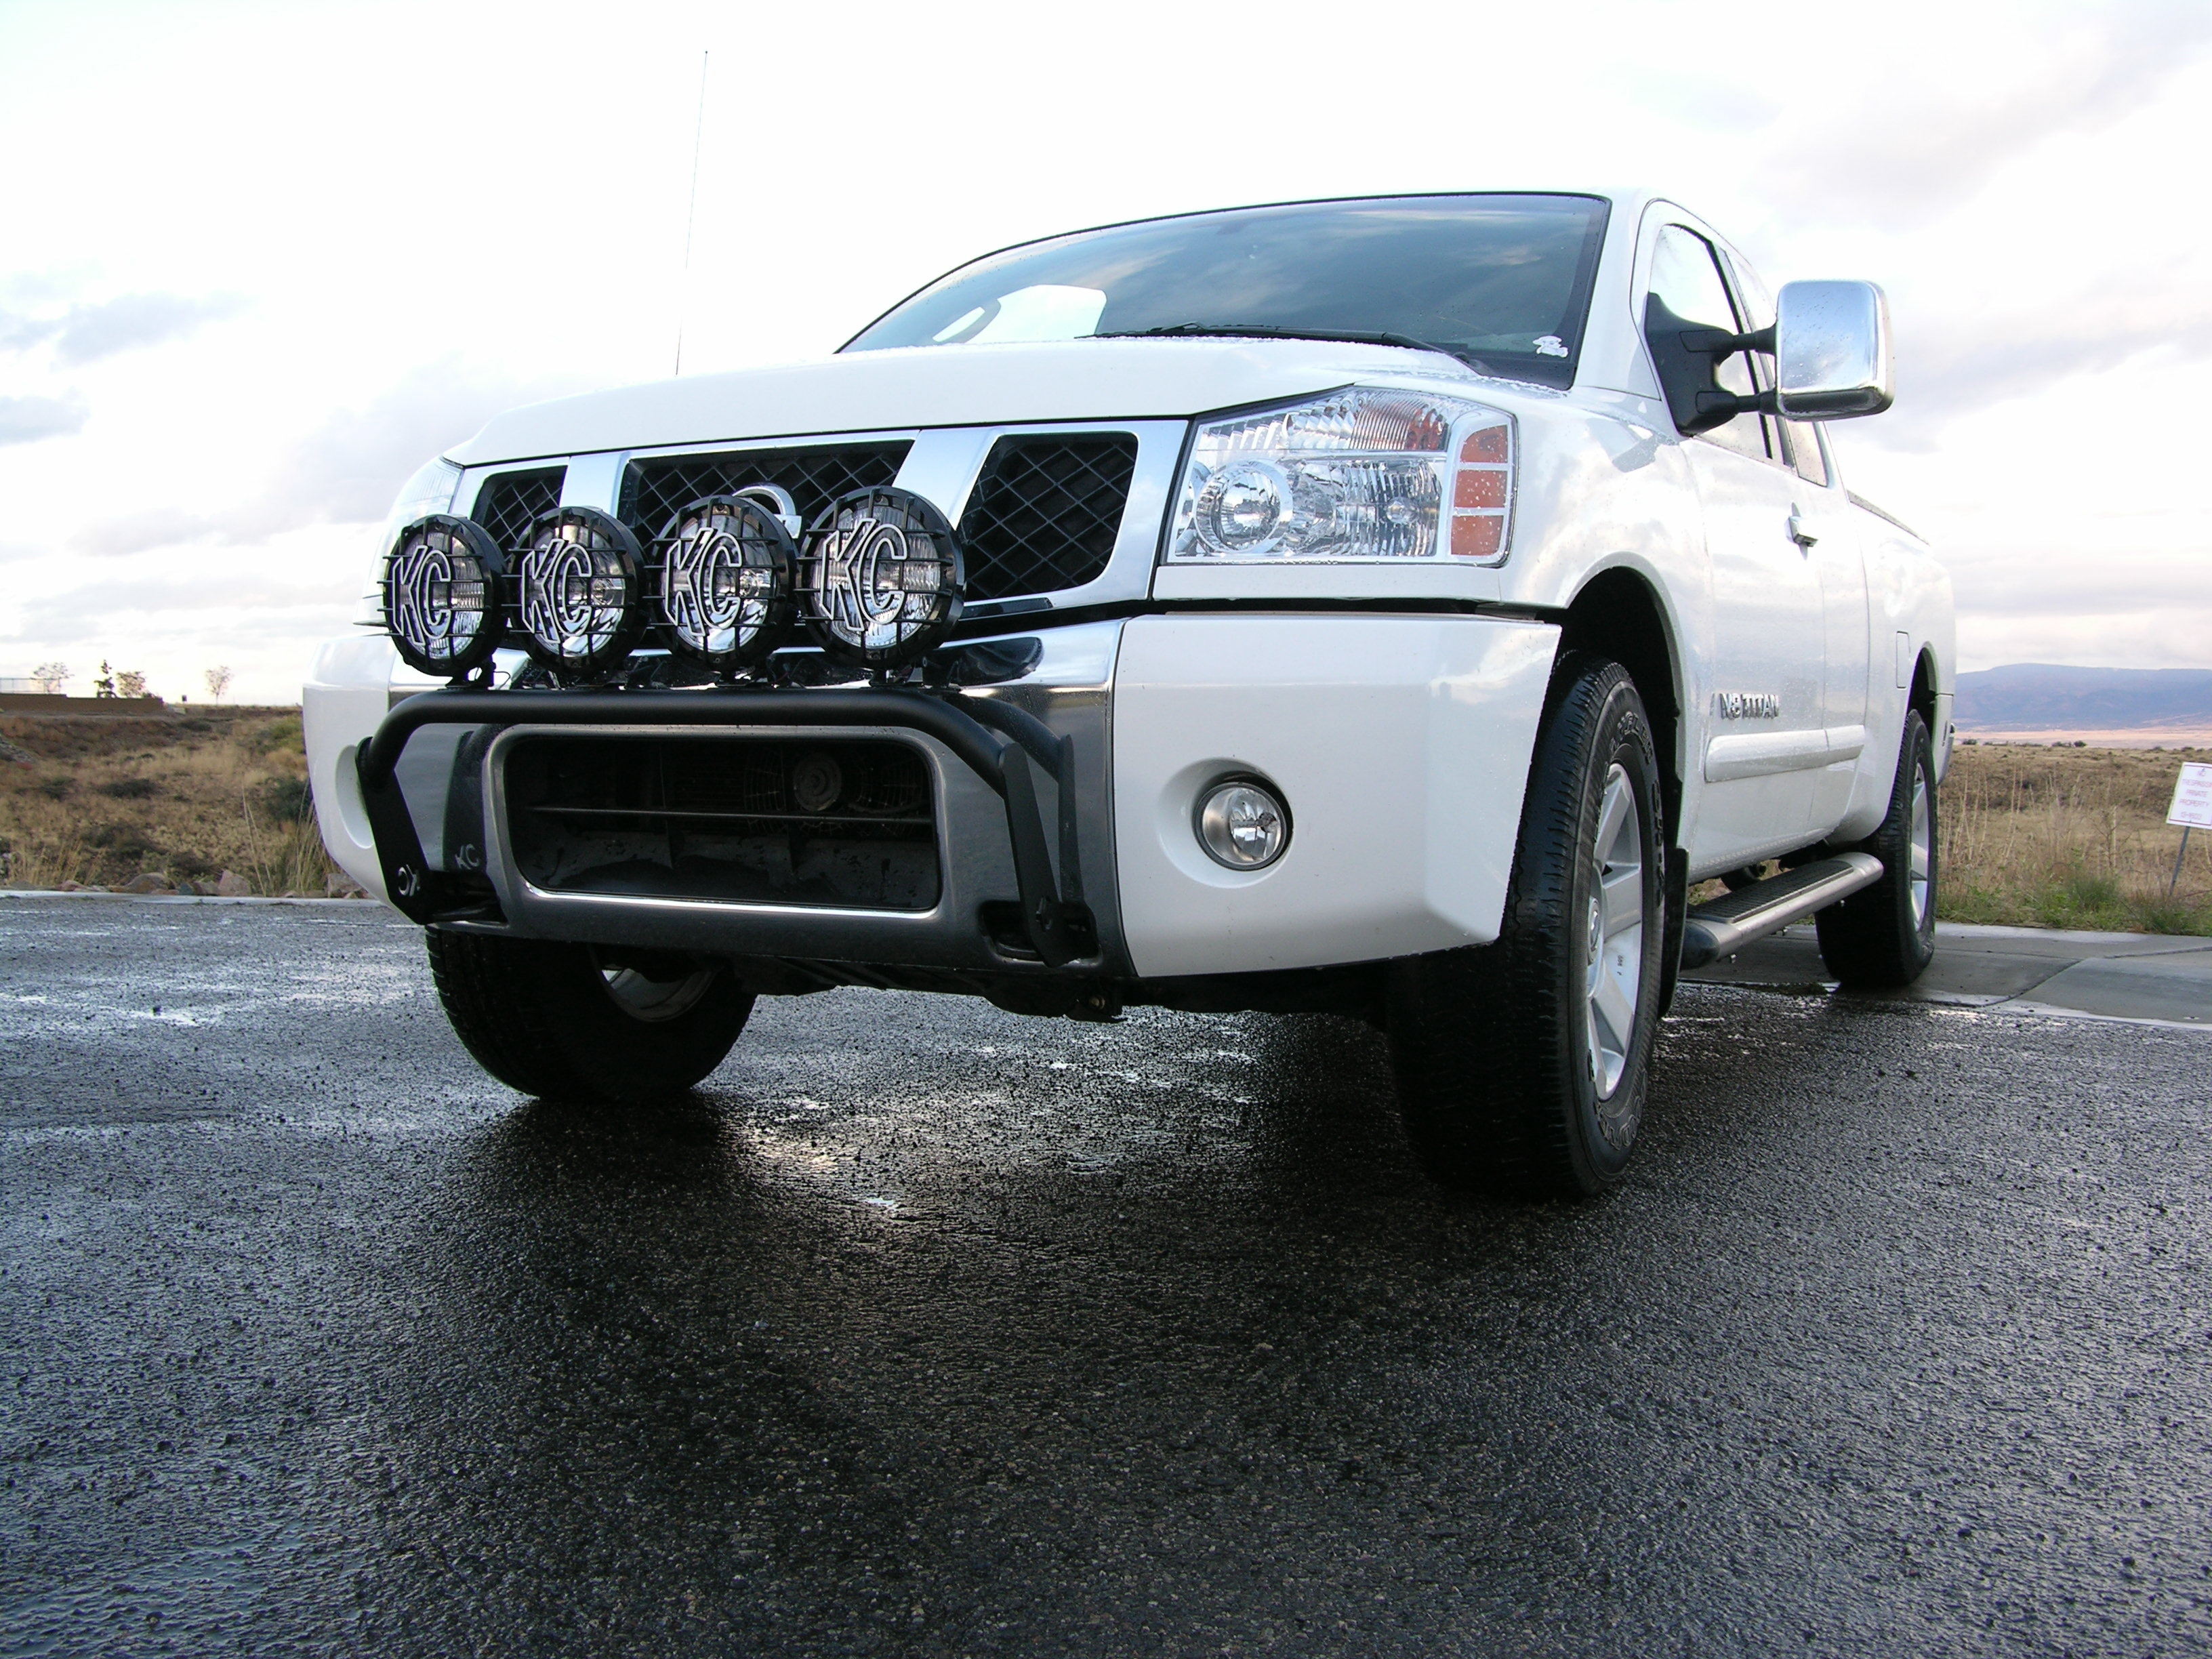 KC Hilites Front Light Bars